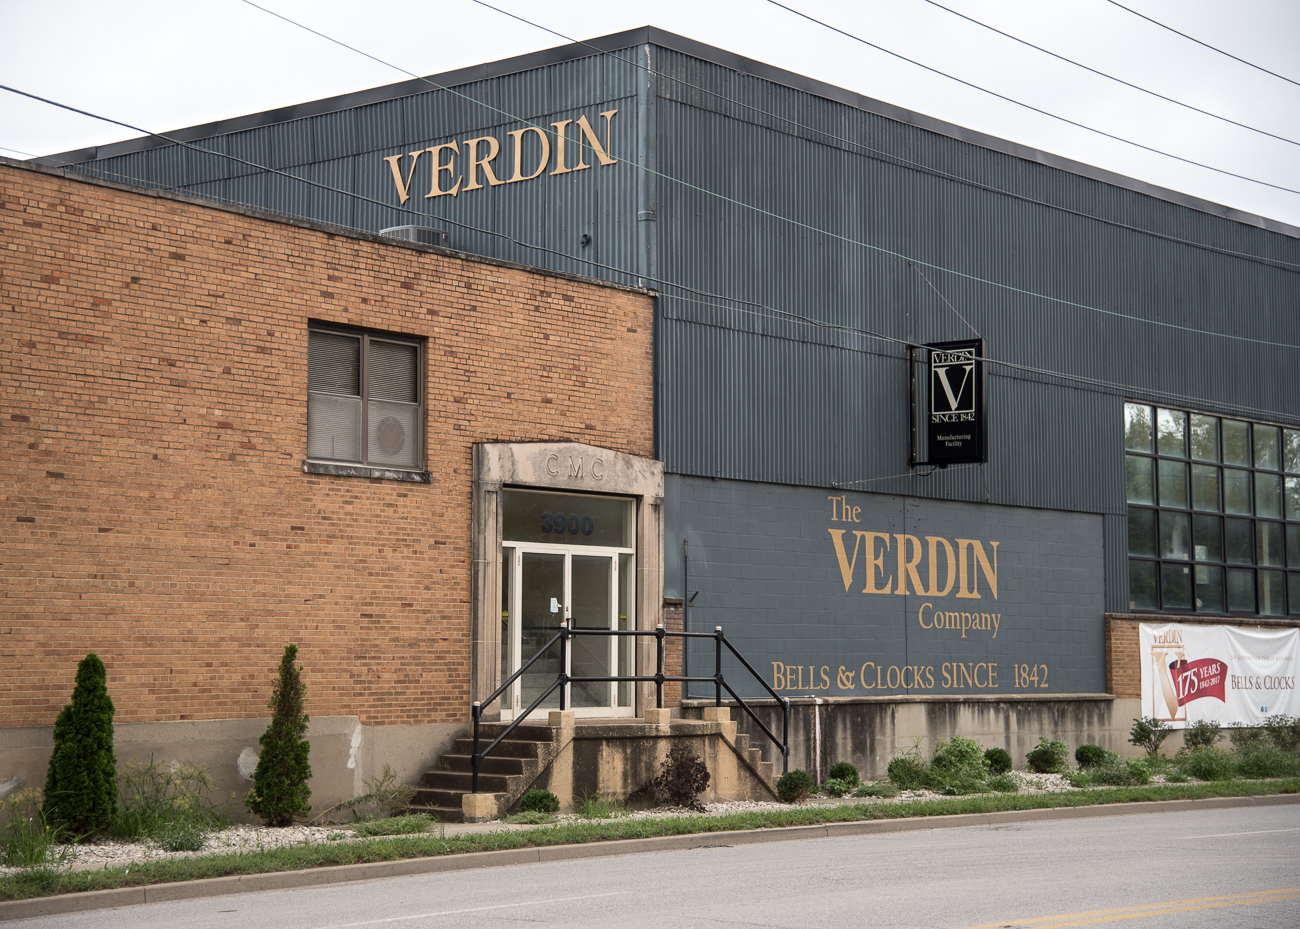 The Verdin Company has been going strong in Cincinnati for 175 years without interruption. They are responsible for manufacturing many bells and clocks around the world—from a carillon at Disney's Epcot Center, to Newport's World Peace Bell, to the New York Stock Exchange's closing bell. The company is currently still family-run by the sixth generation of Verdins. / Image: Phil Armstrong, Cincinnati Refined // Published: 10.19.18